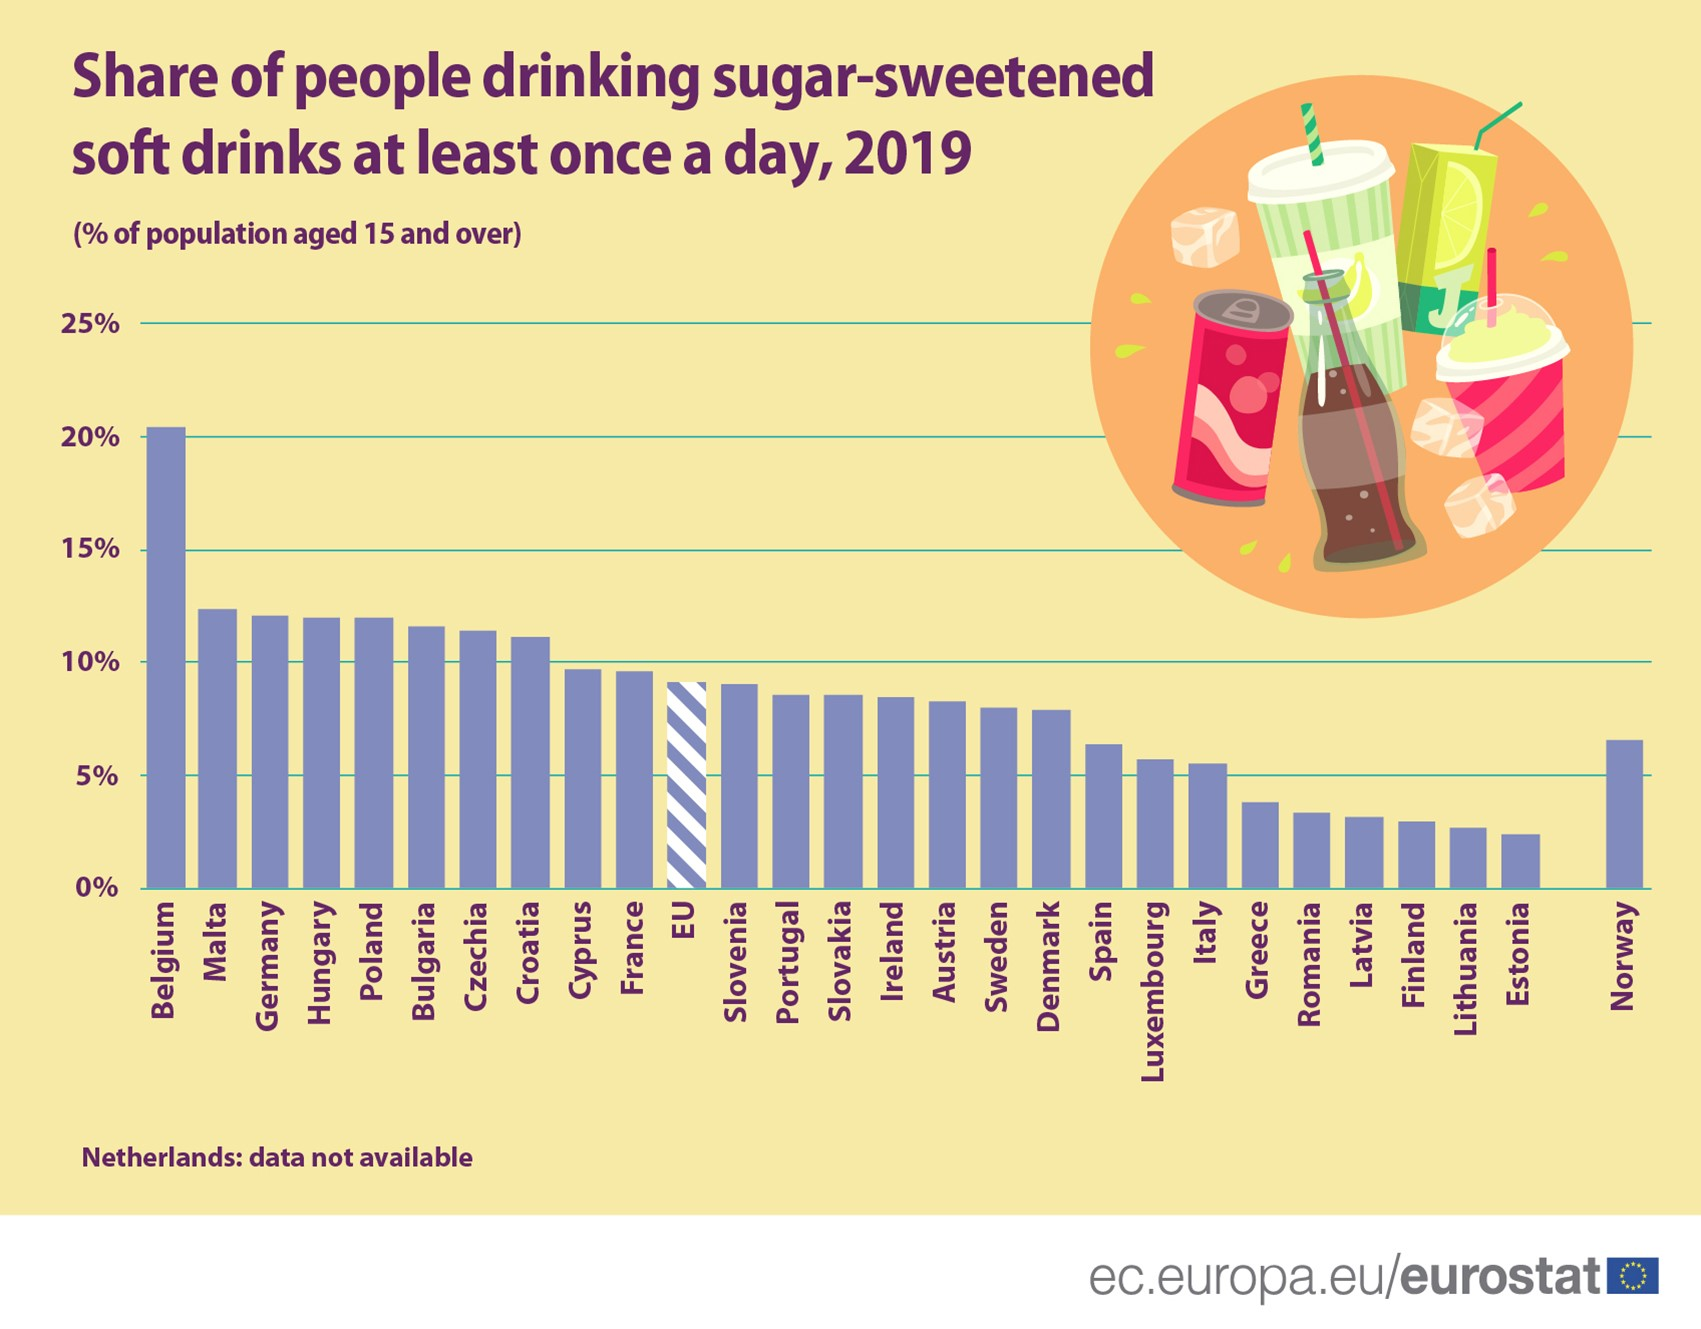 Bar chart: Share of people drinking sugar-sweetened soft drinks in the EU, EU Member States and EFTA countries, 2019, at least once a day, % population aged 15 and over